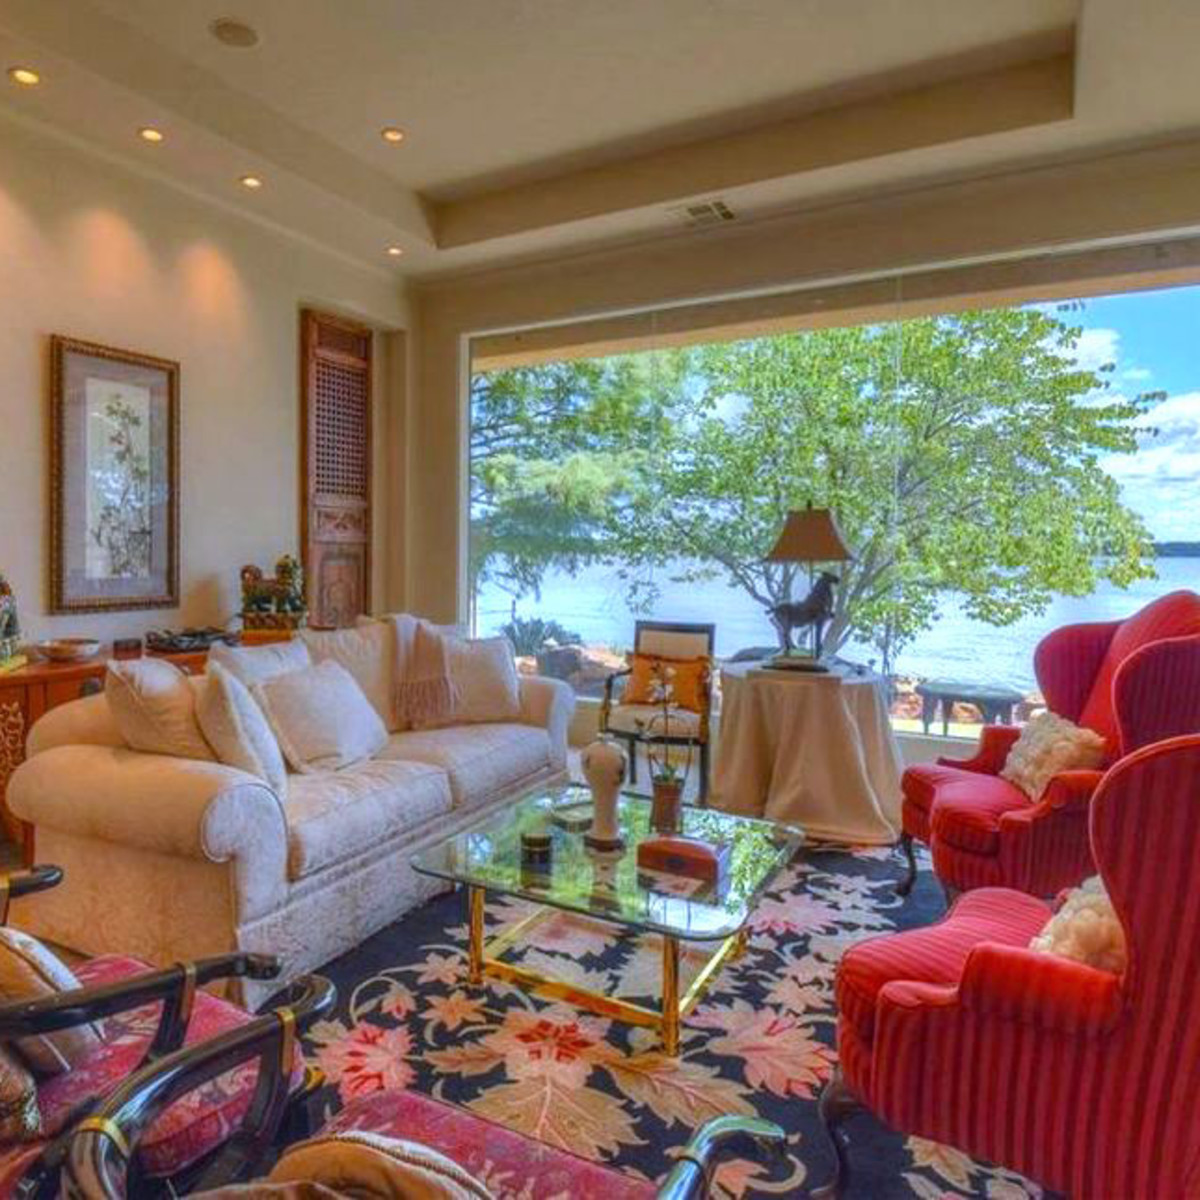 Rex Tillerson home at Horseshoe Bay, living room